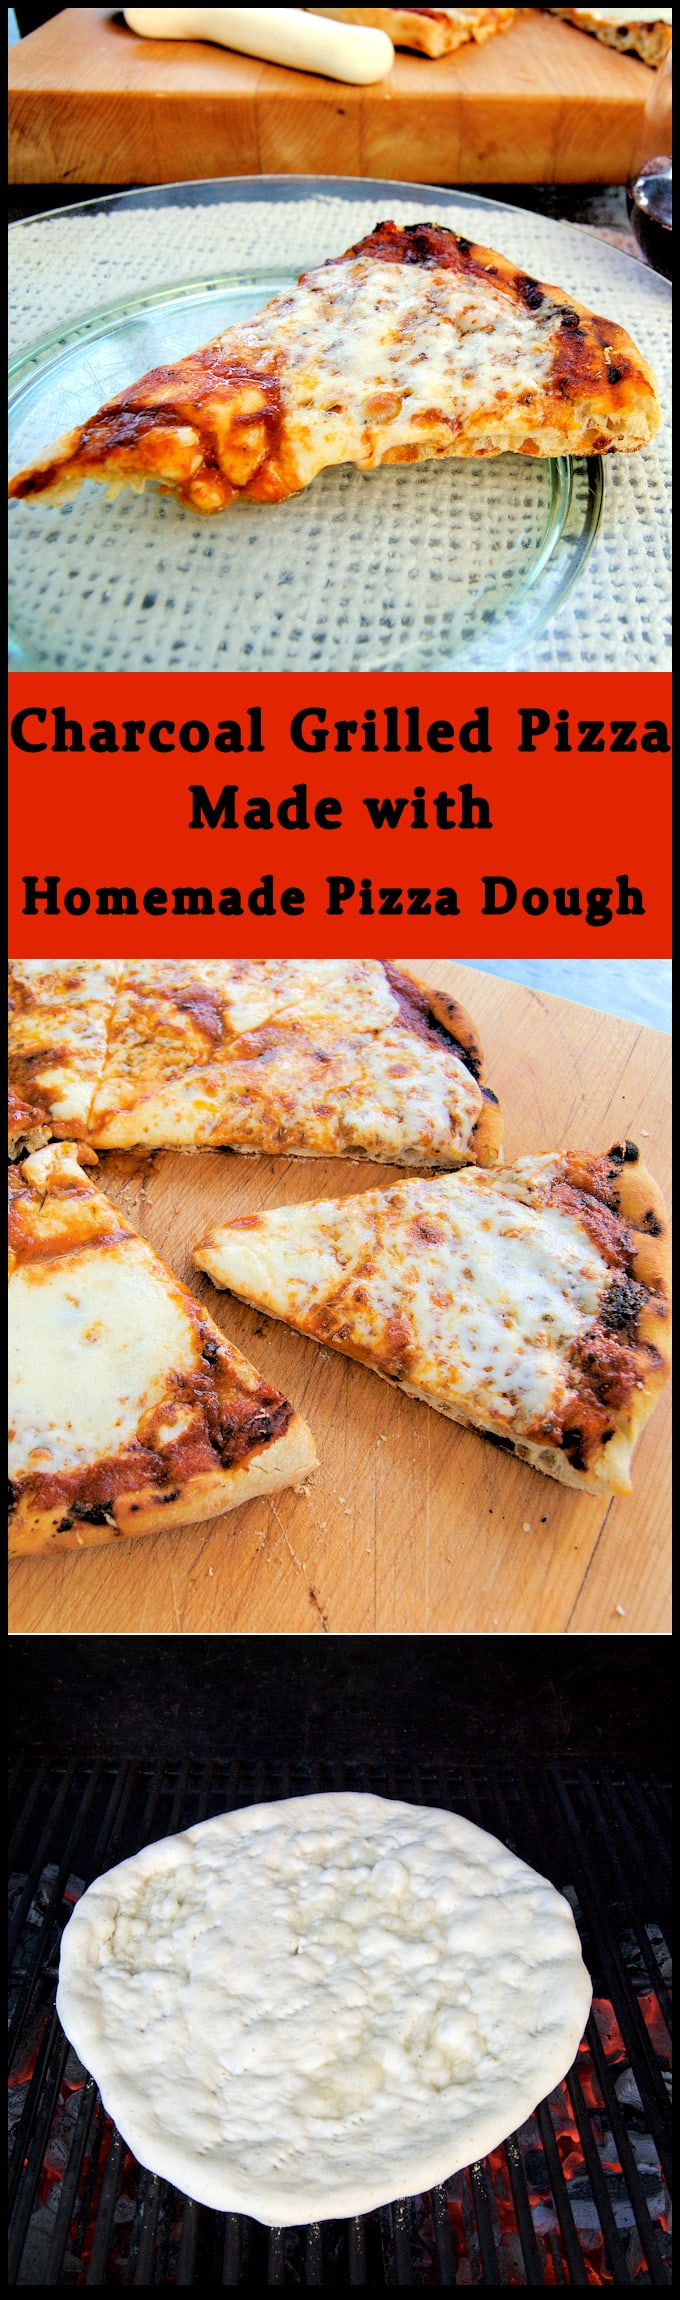 Charcoal Grilled Pizza is the best pizza you'll ever eat! Make homemade pizza dough, gather up your toppings and fire up the grill. See step by step photos and instructions for grilled pizza success.